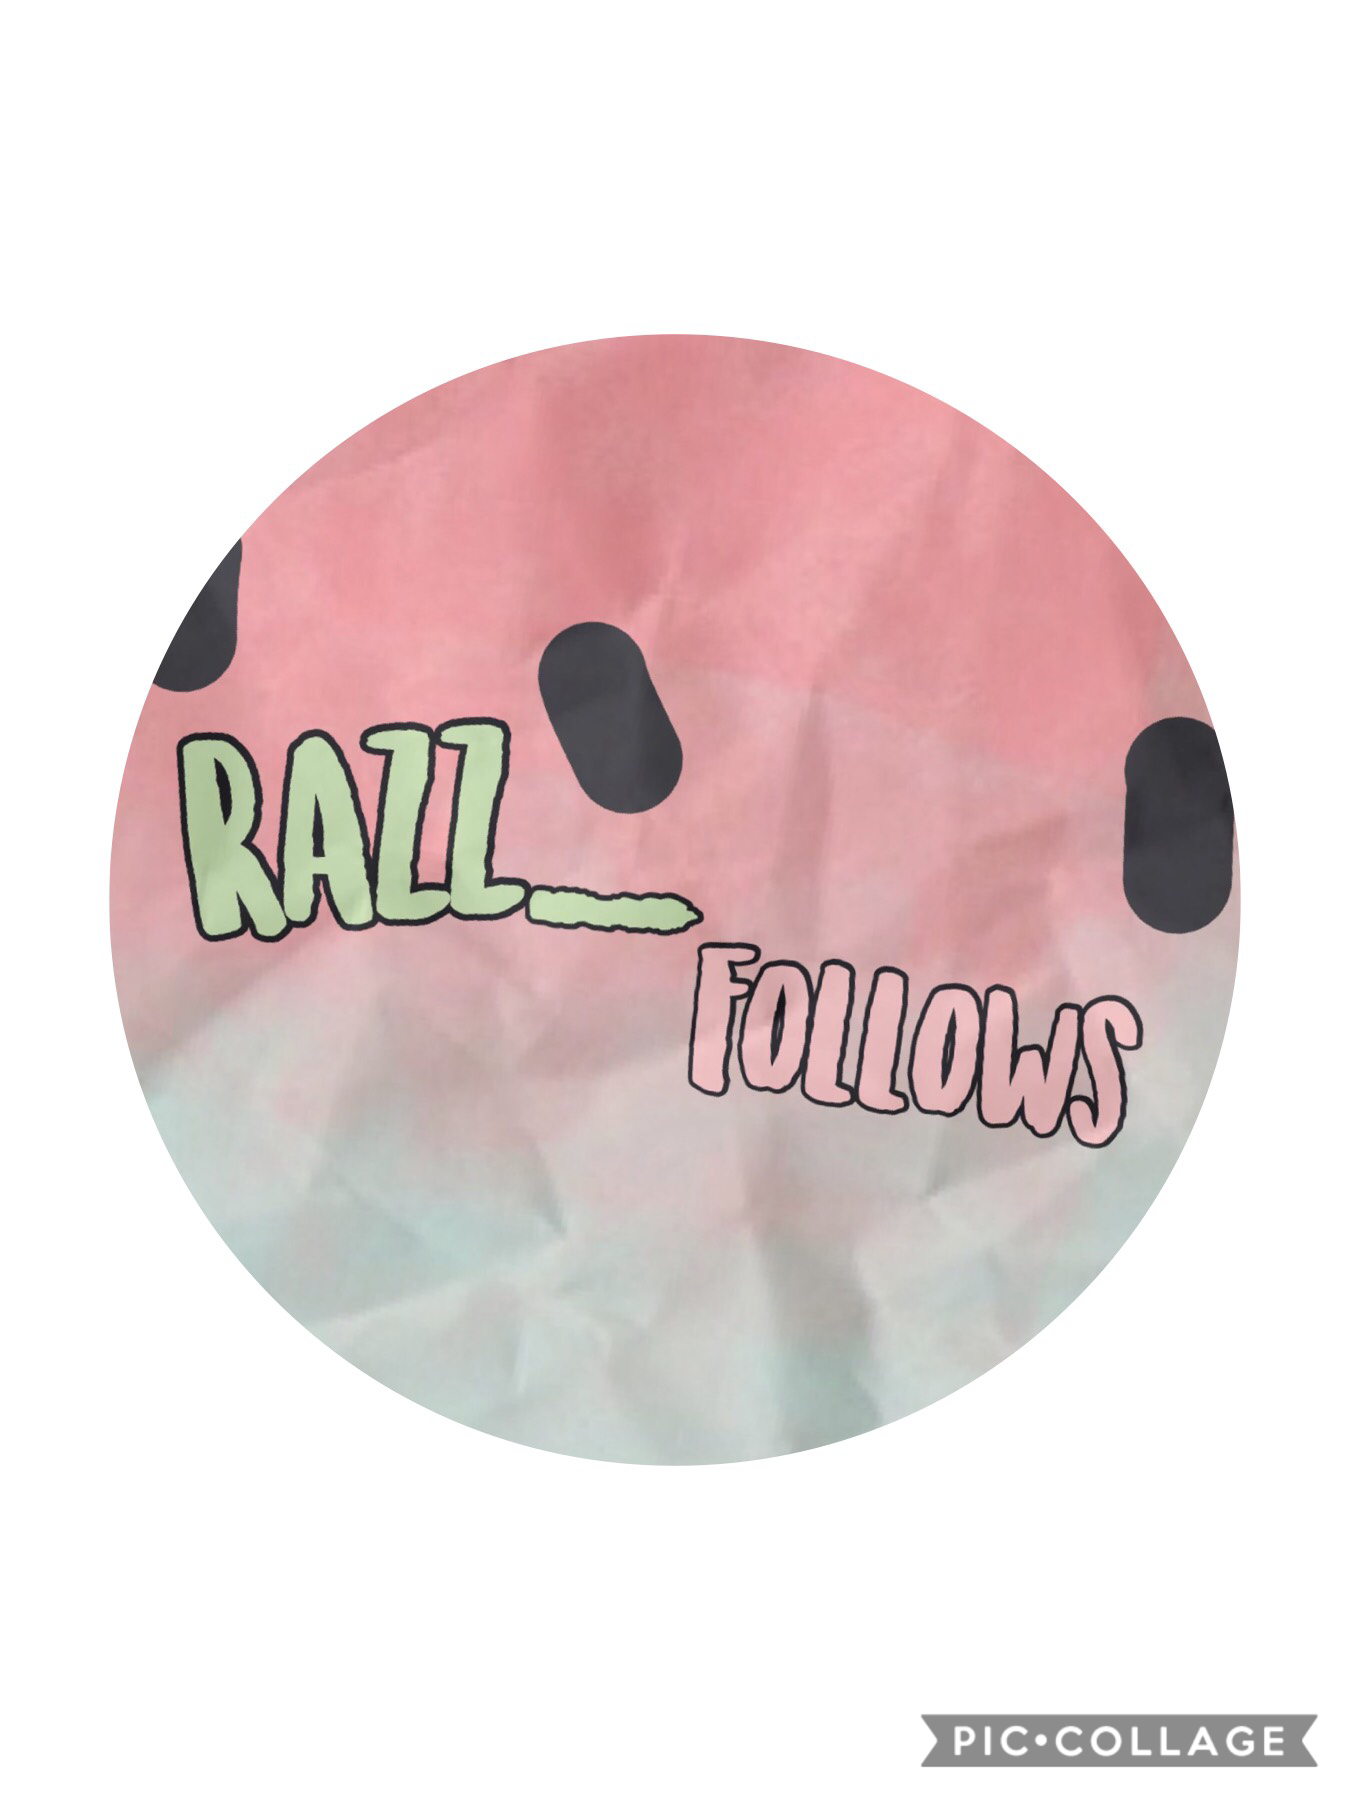 here's ur icon for being my 900th follower! i won't be offended if u don't use it! ♥️